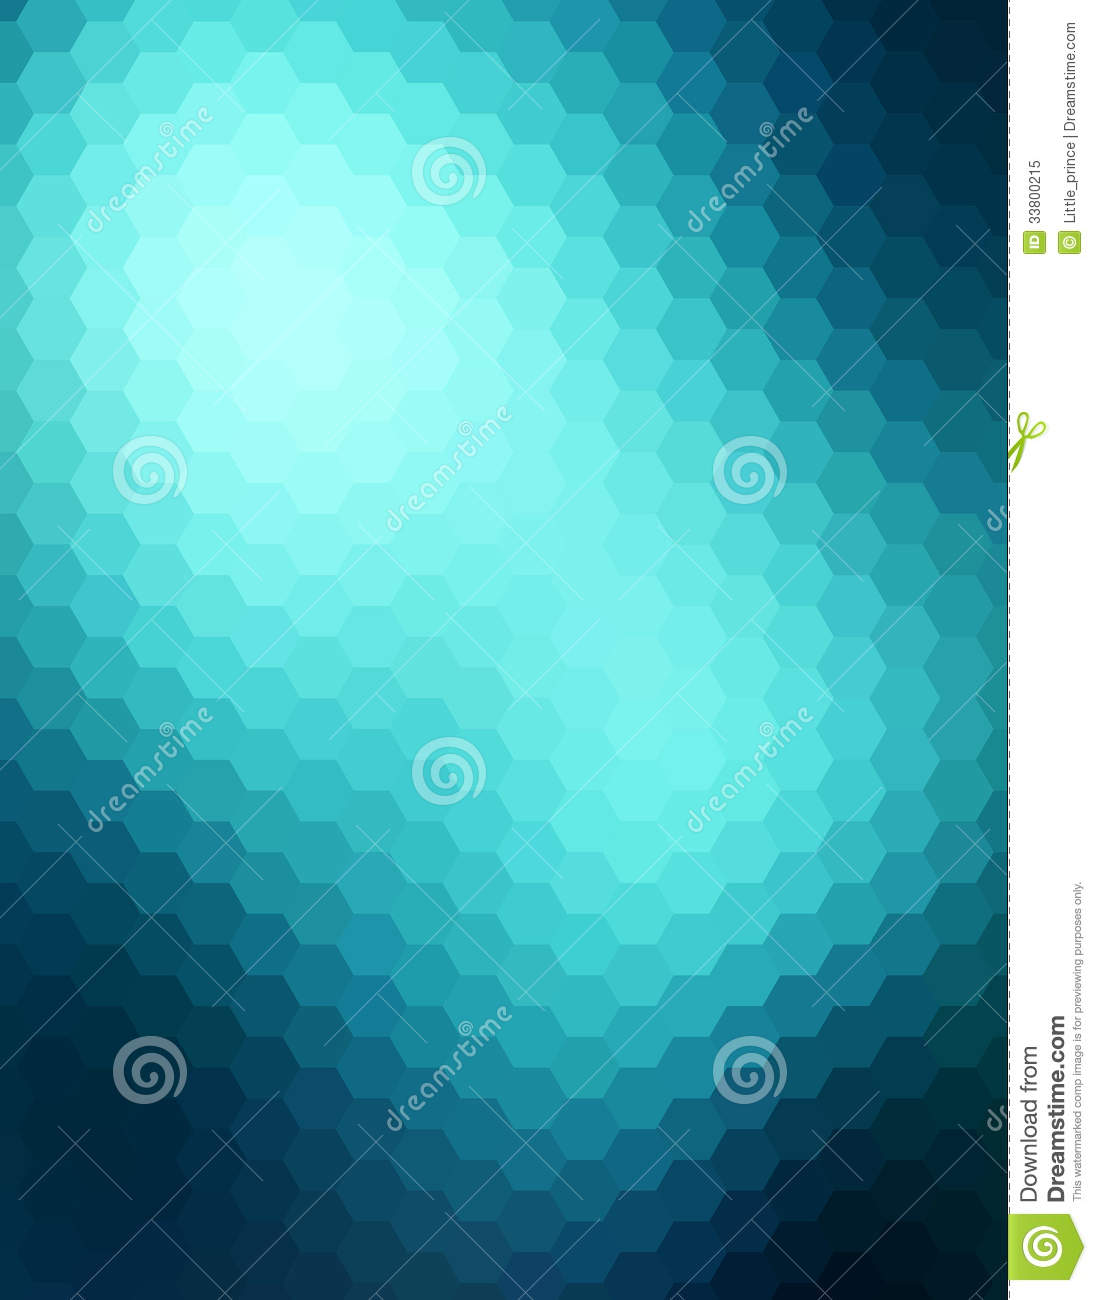 Blue Technology: Blue Abstract Technology Background Royalty Free Stock